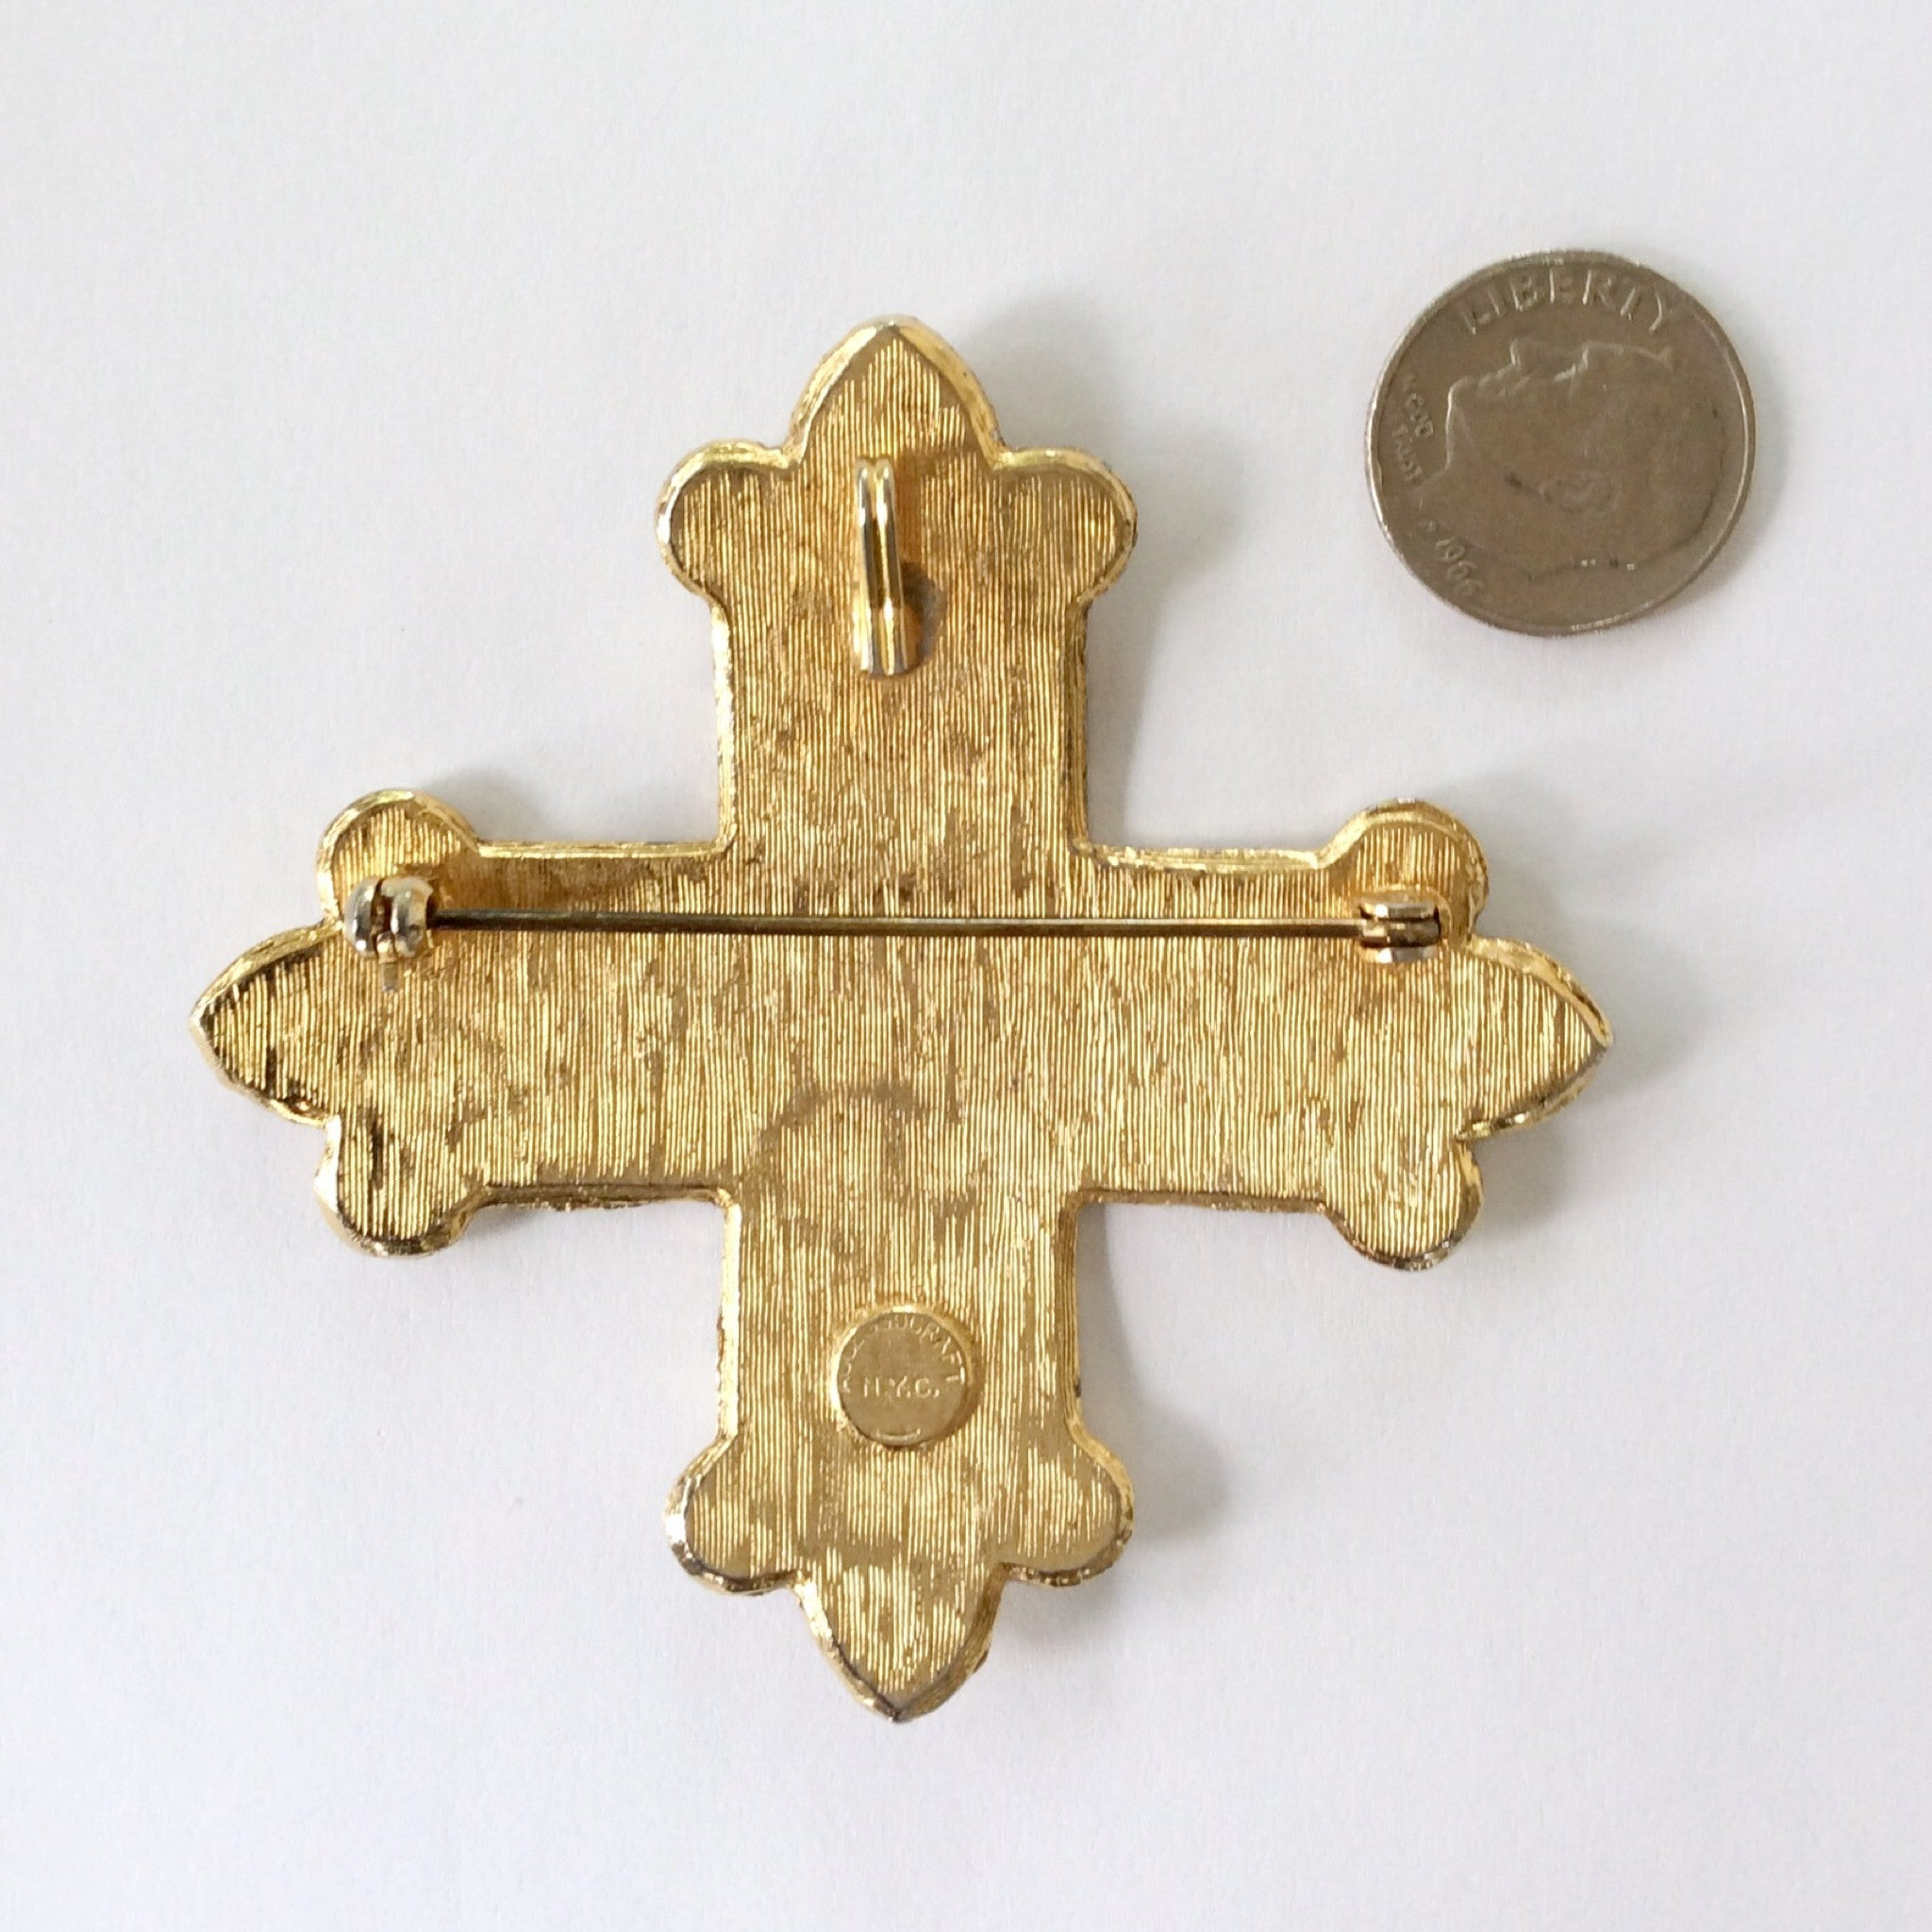 Accessocraft NYC Cross Brooch / Vintage Cross Brooch or Pendant